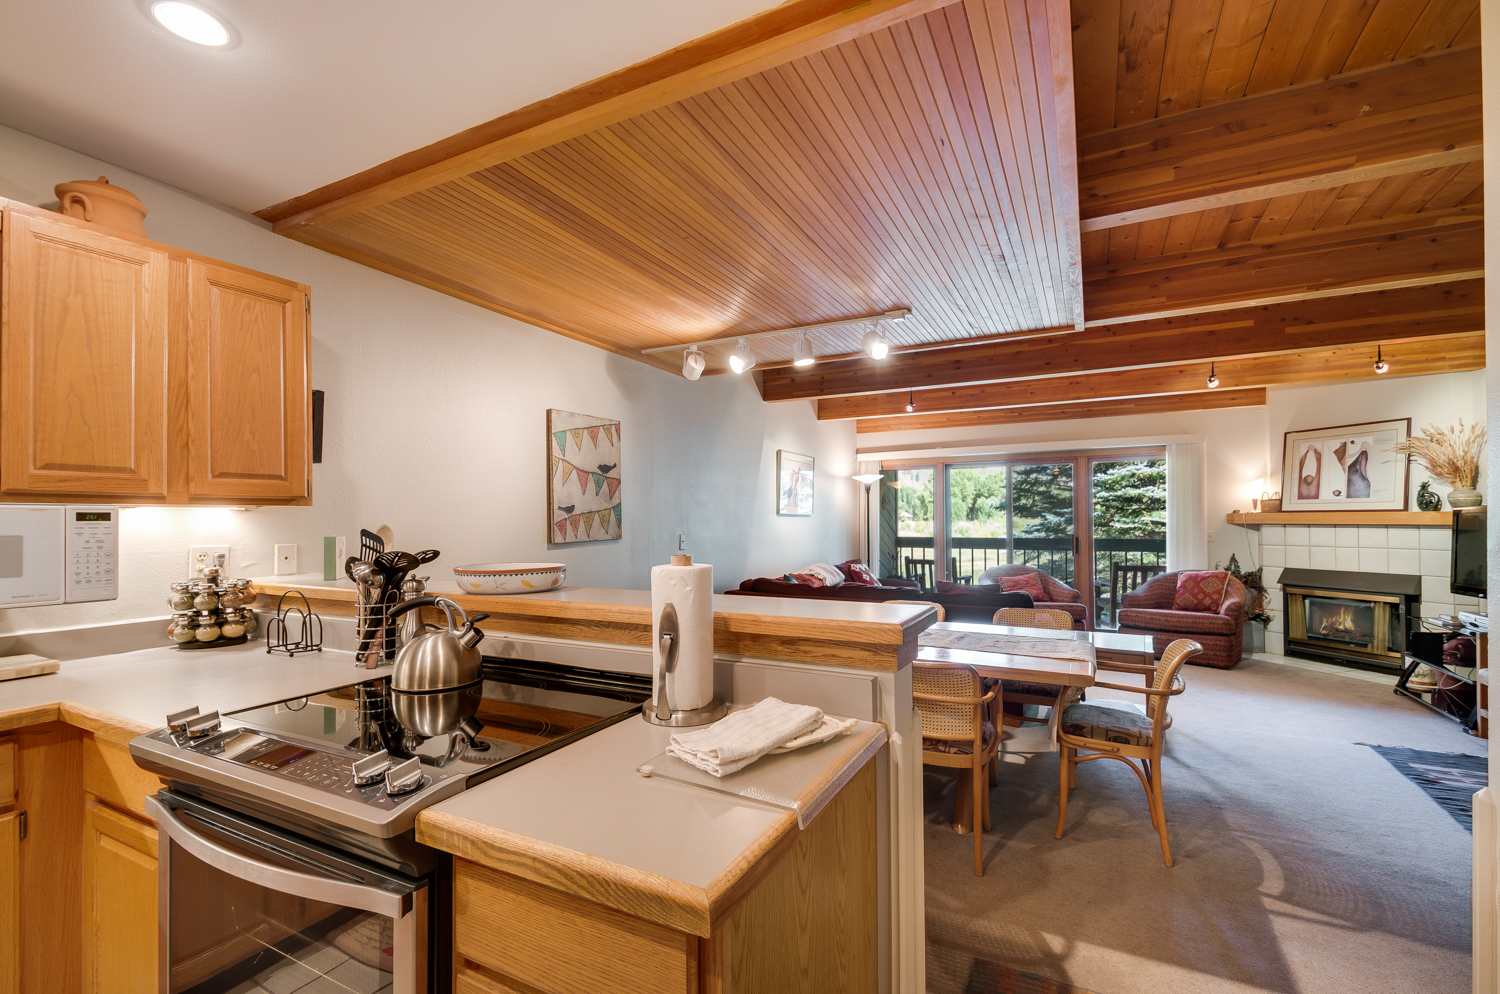 Kitchen to living area view with wood paneling and ceiling